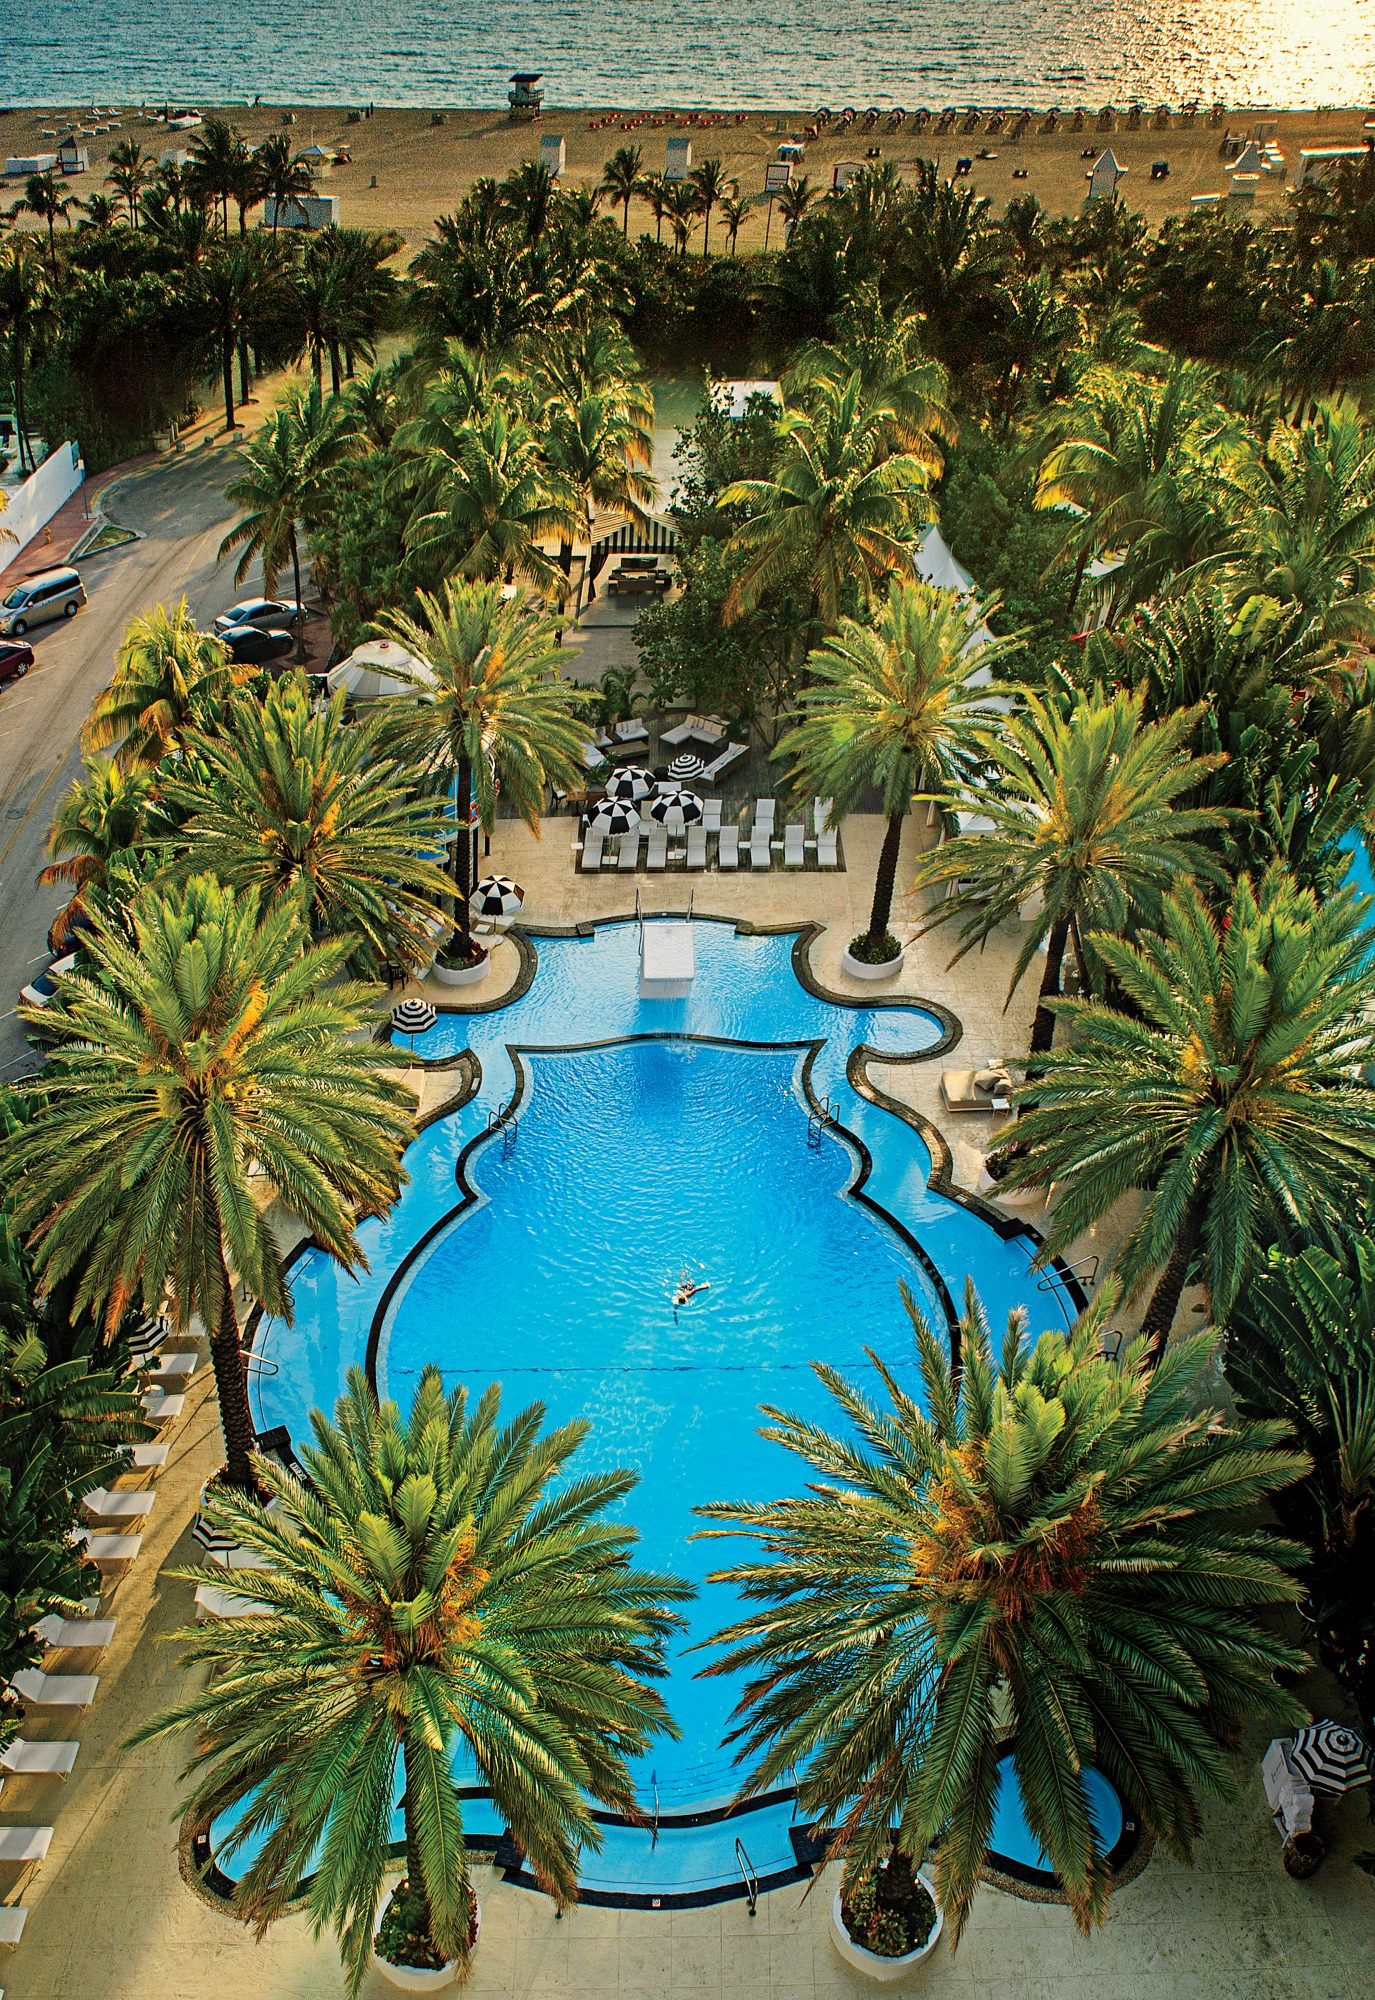 The Raleigh Hotel Pool